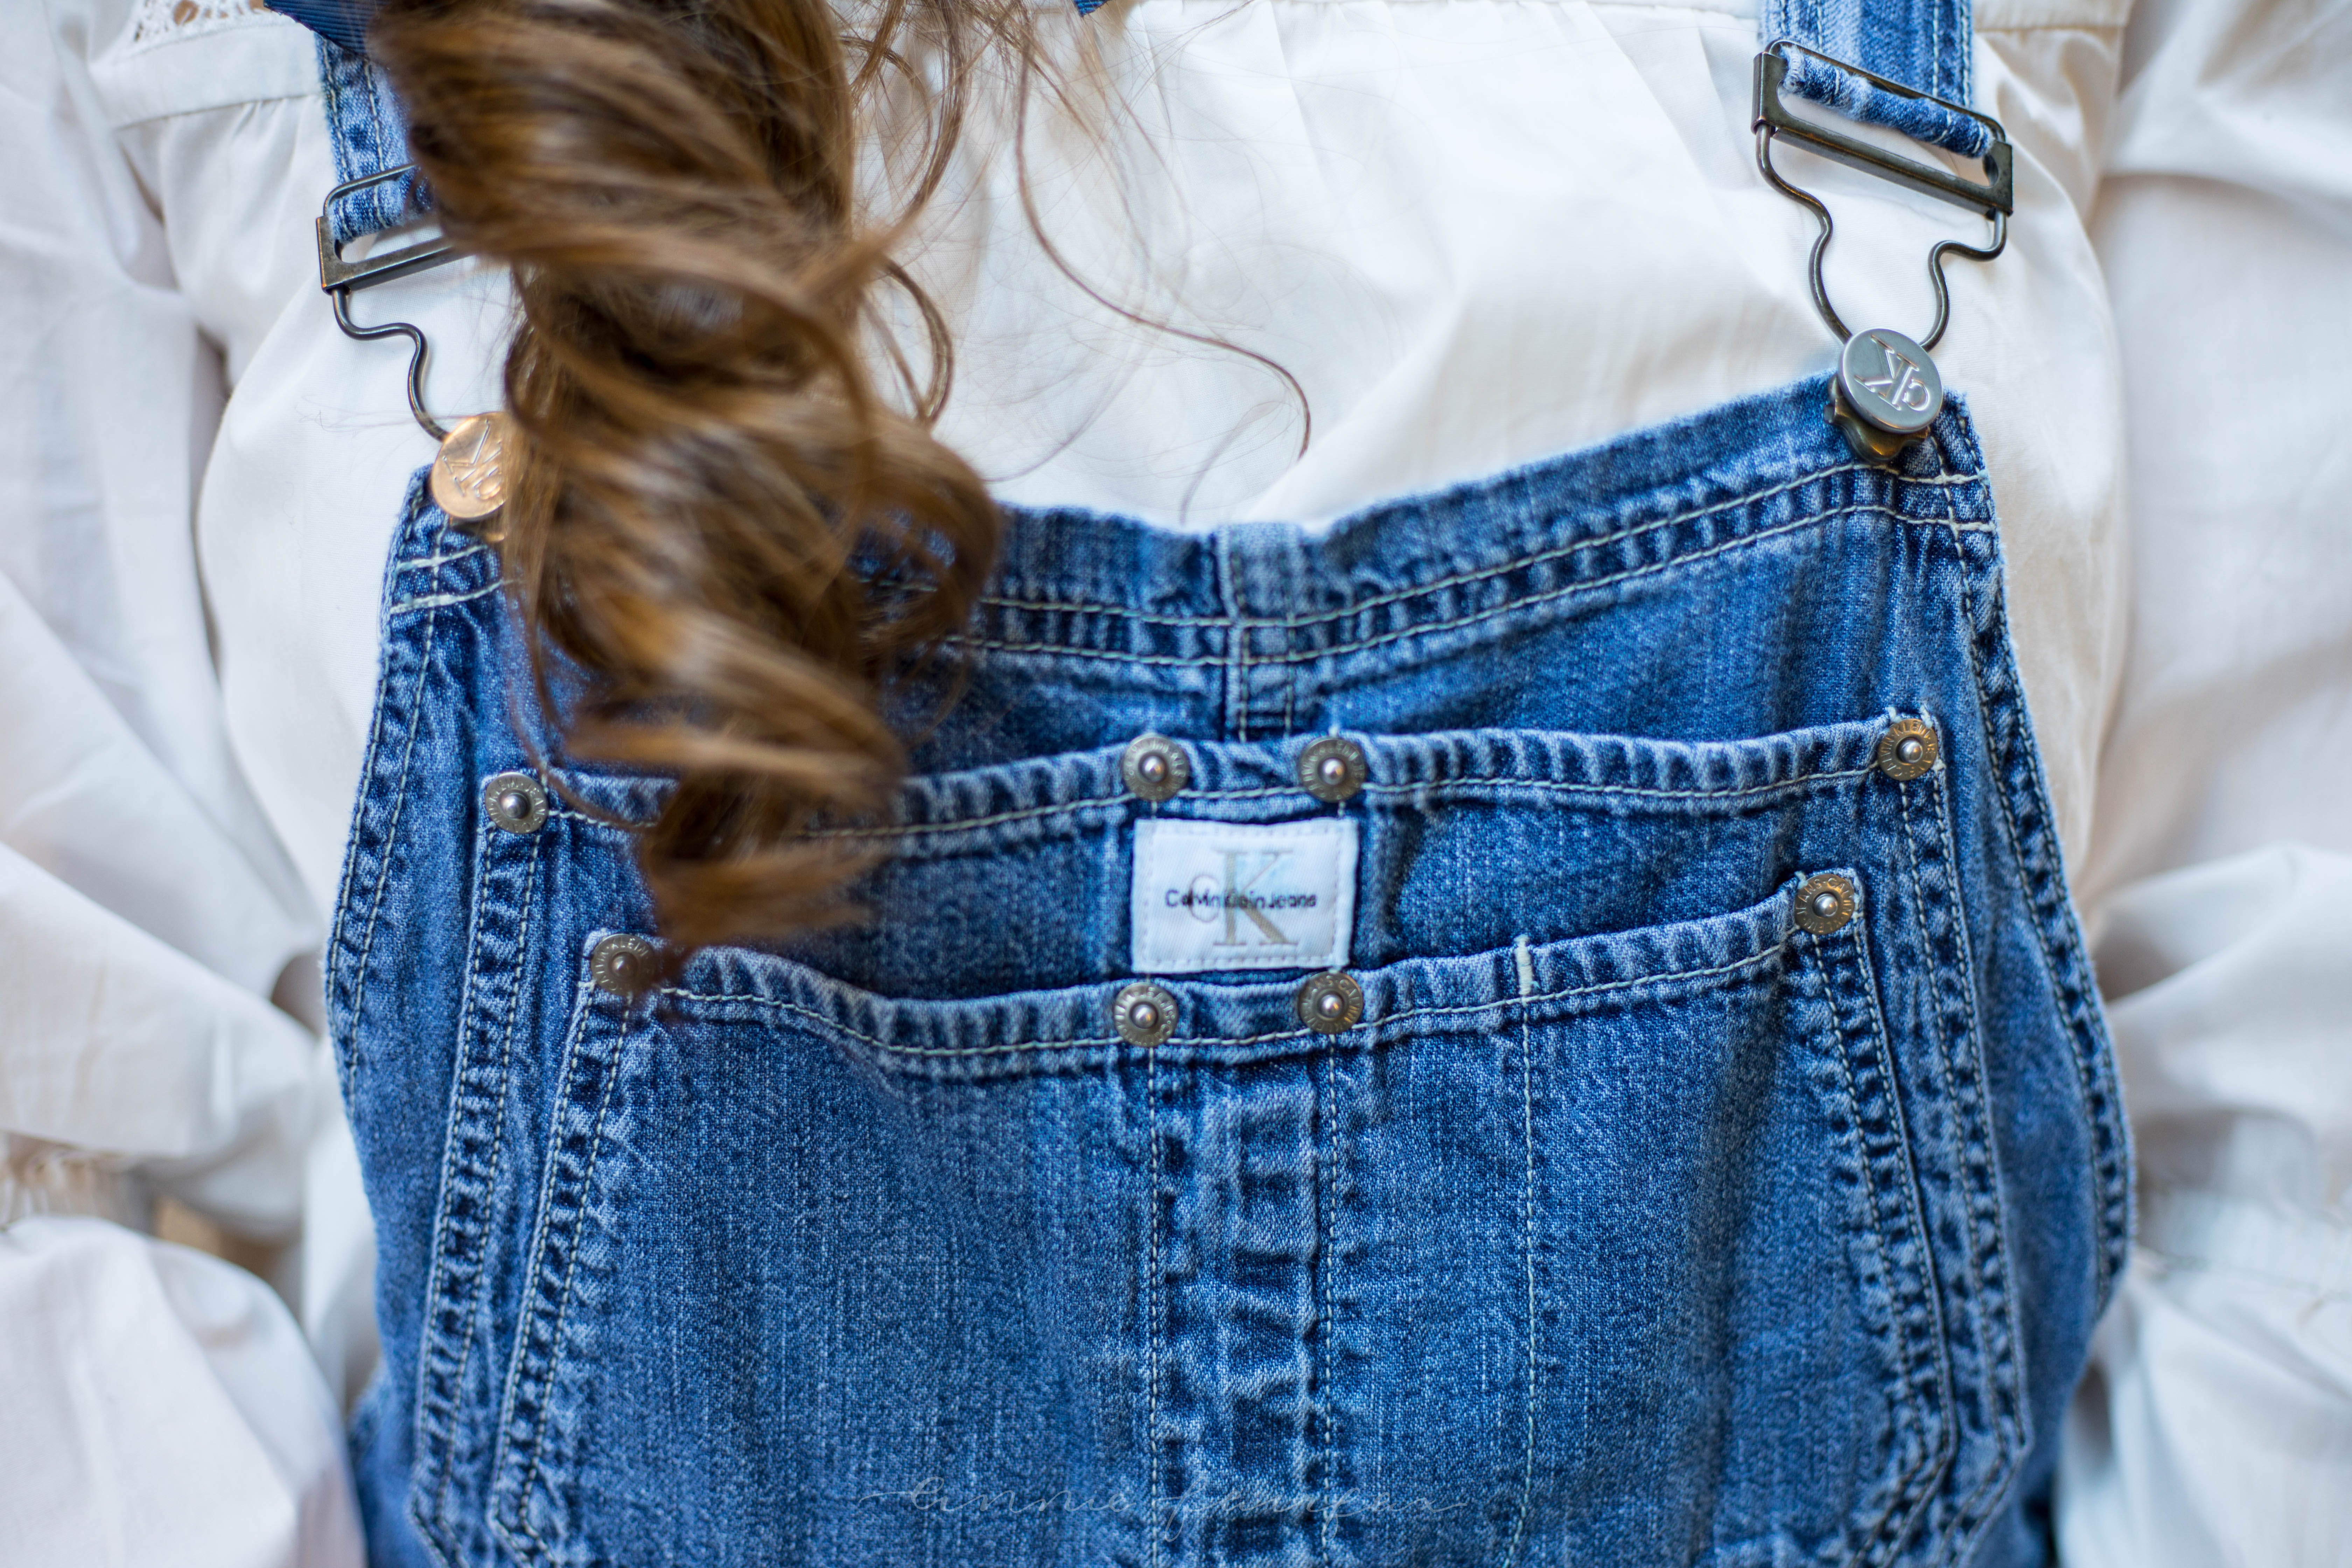 *Feathered Pour La Victoire Shoes Denim Overalls Elegant Bell Sleeve Embroidered Free People Top